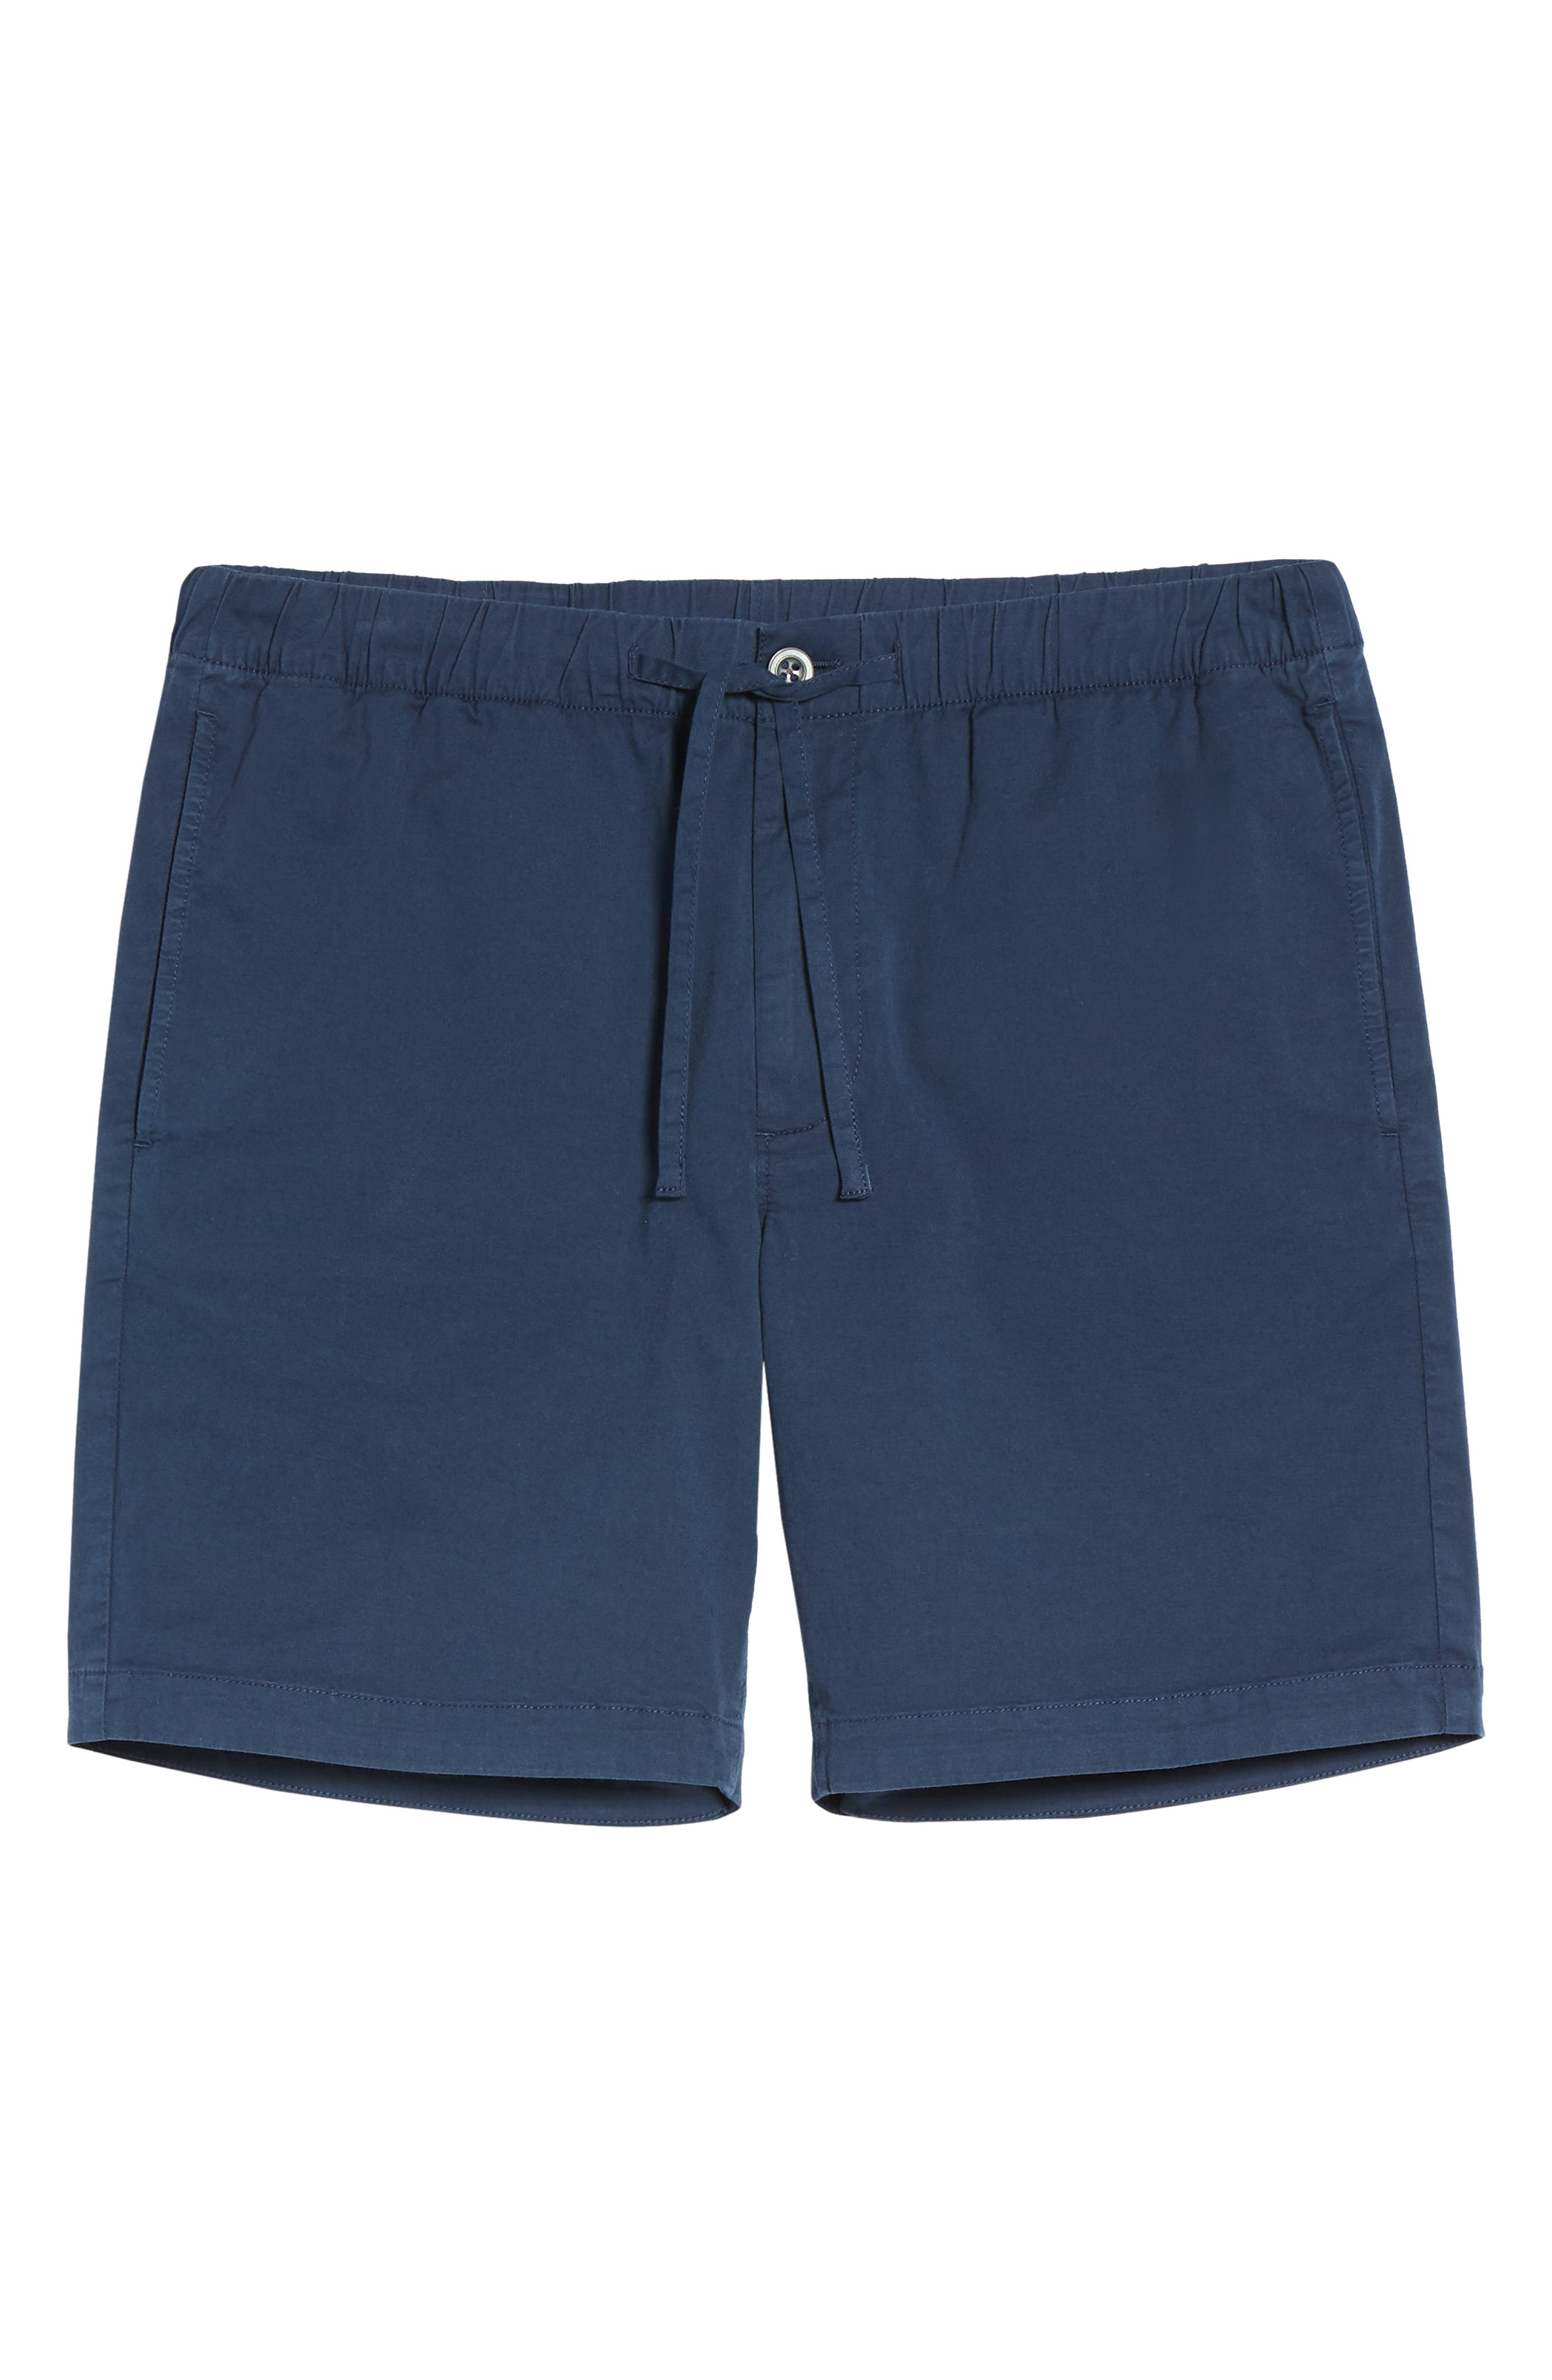 7-Inch Beach Shorts,                             Alternate thumbnail 32, color,